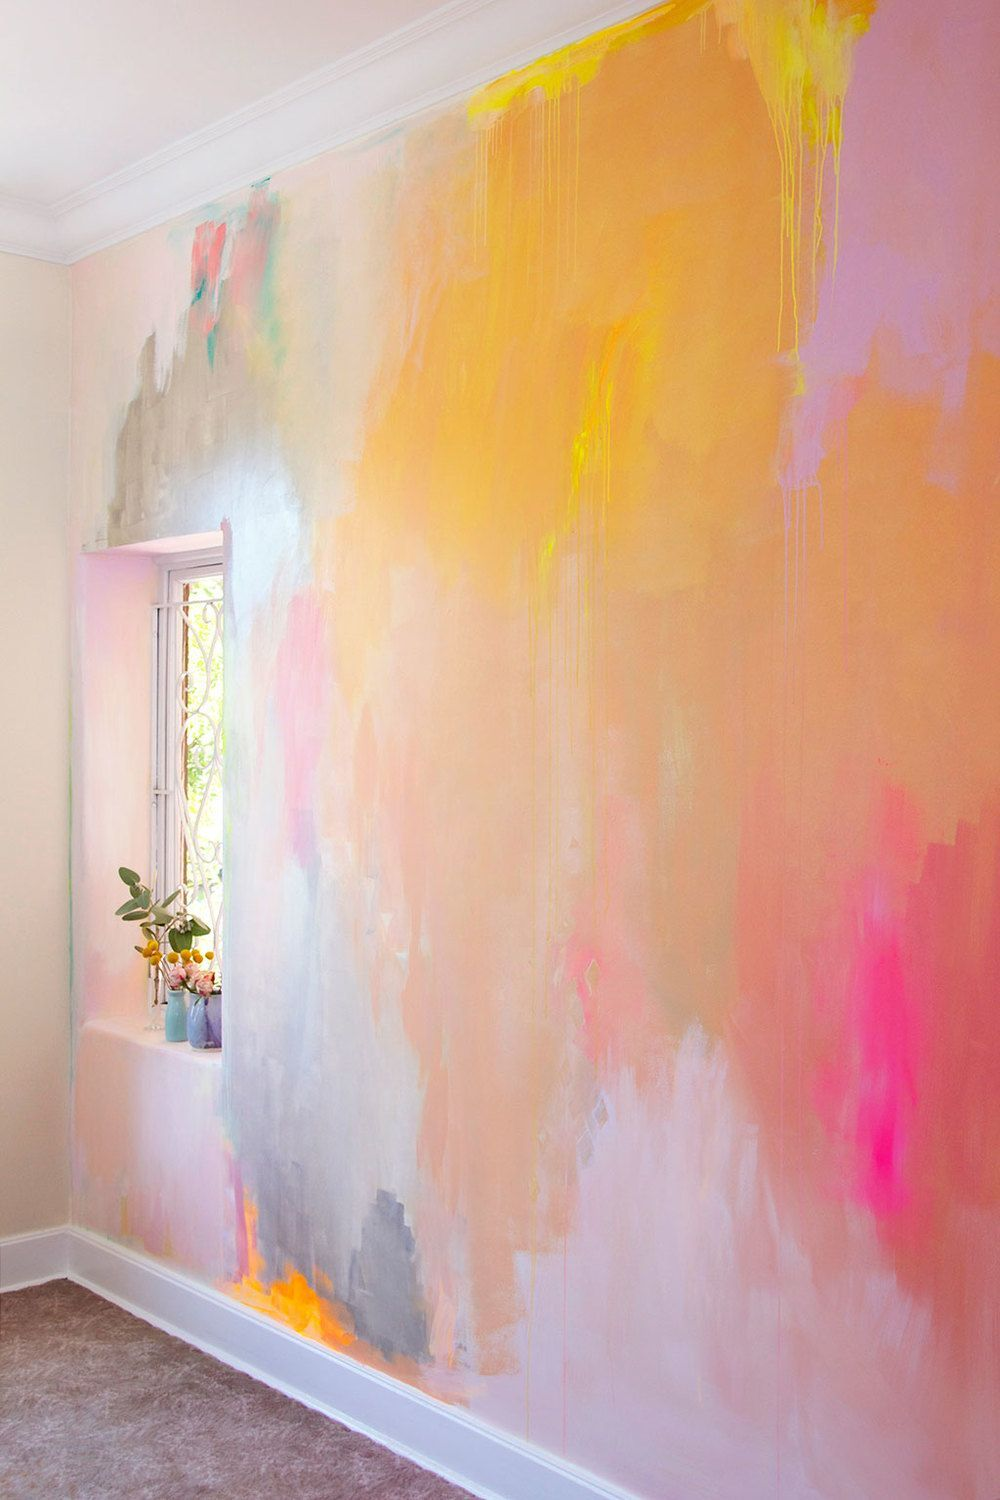 Bright Happy Styled Bedroom Idea With Painted Abstract Mural In Earthy Summer Colors Of Peach Coral Yellow And Pink Featu Wall Painting Neon Painting Mural